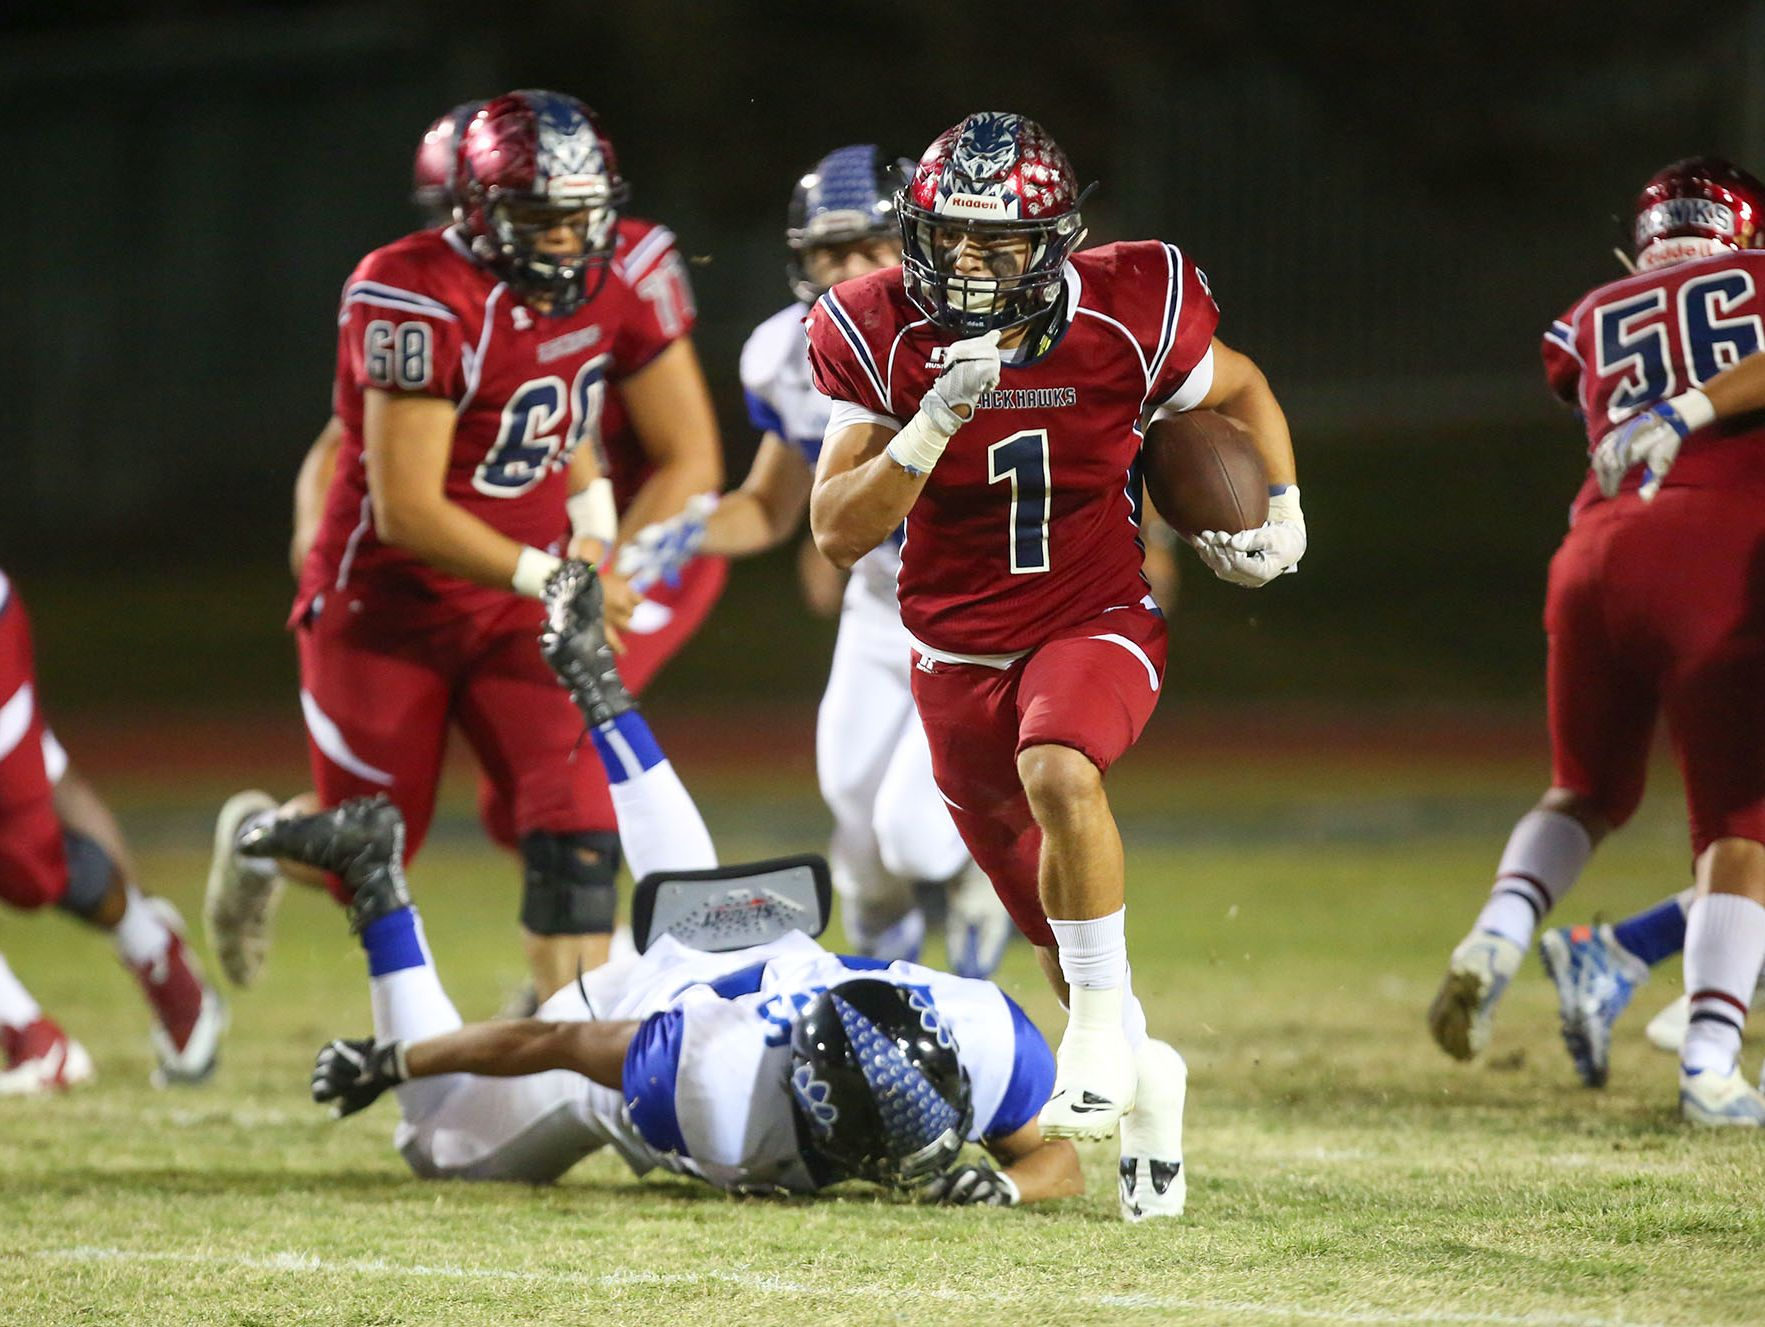 Benji Cordova breaks away early in the first quarter for touchdown against Cathedral City, November 4, 2016.